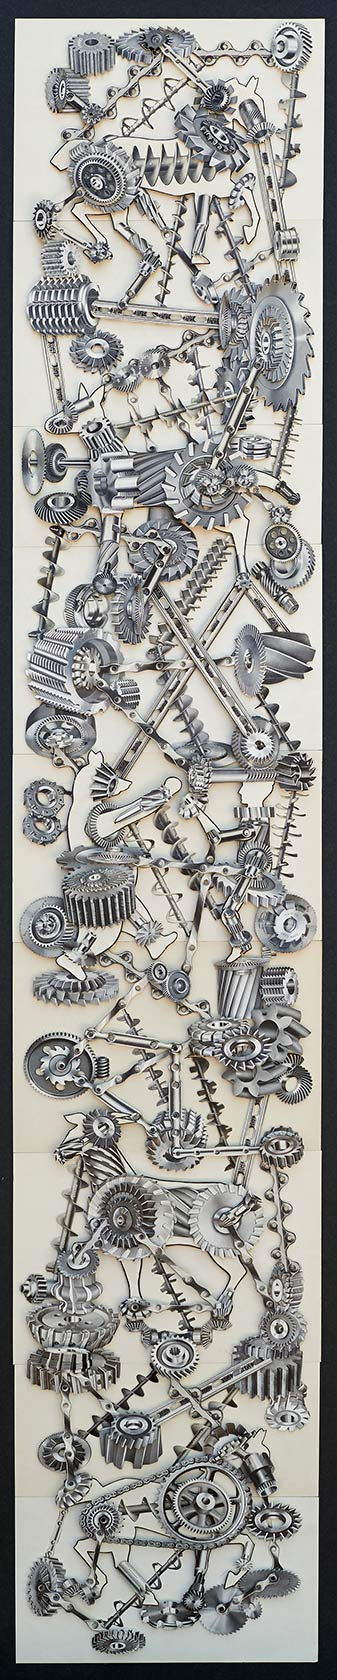 "Toy Machine ( 54"" x 10"")"